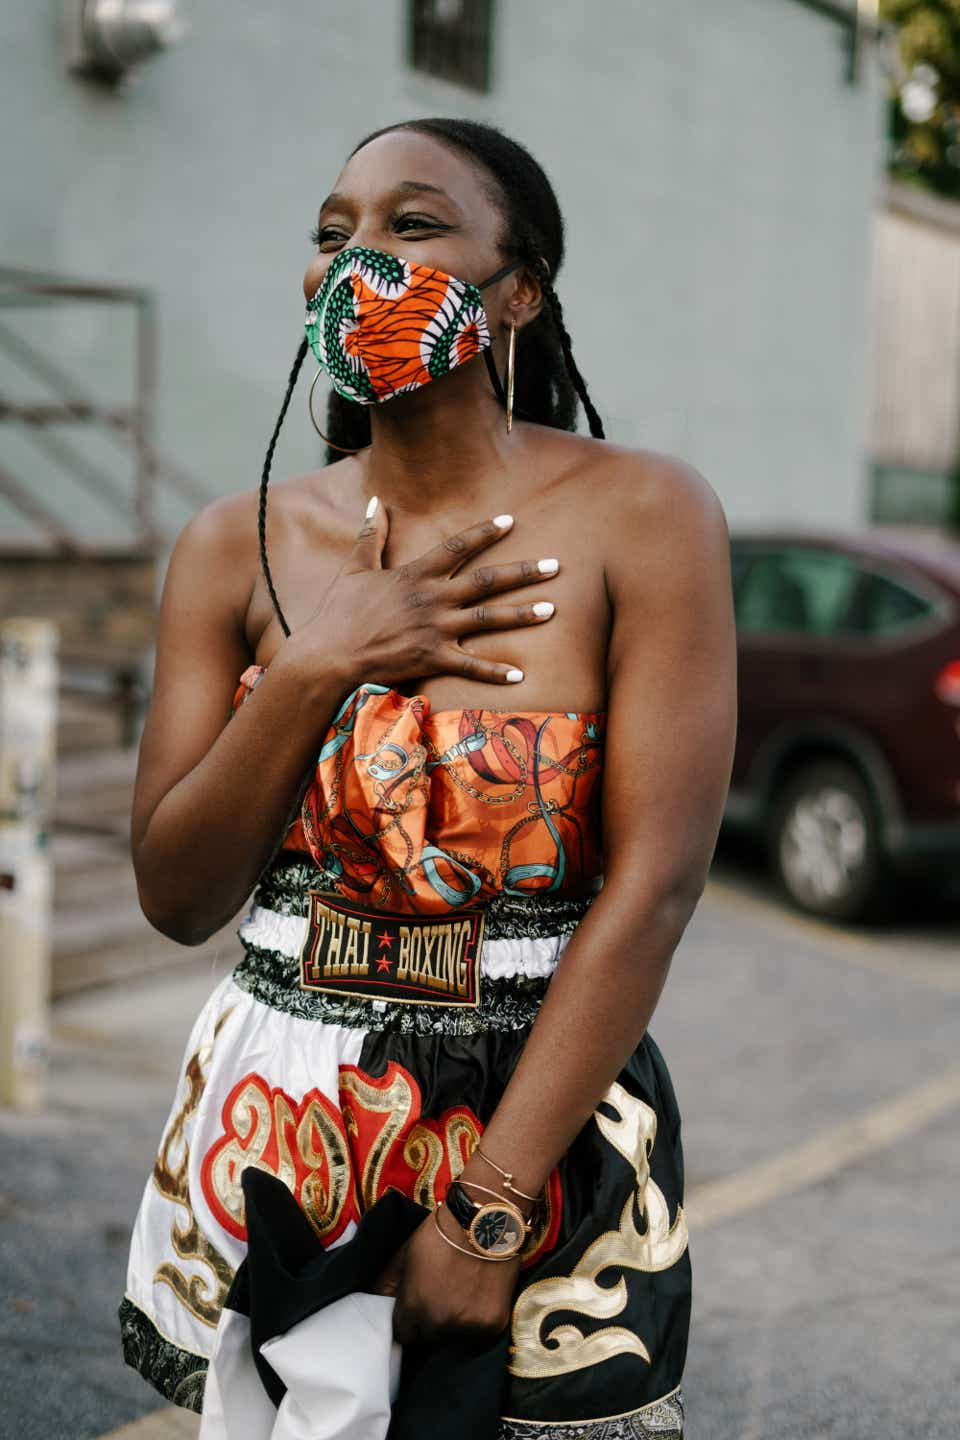 Naira is wearing a patterned orange tube top with Muay Thai boxing shorts. Her mask is green and orange, and she has gold hoop earrings on.